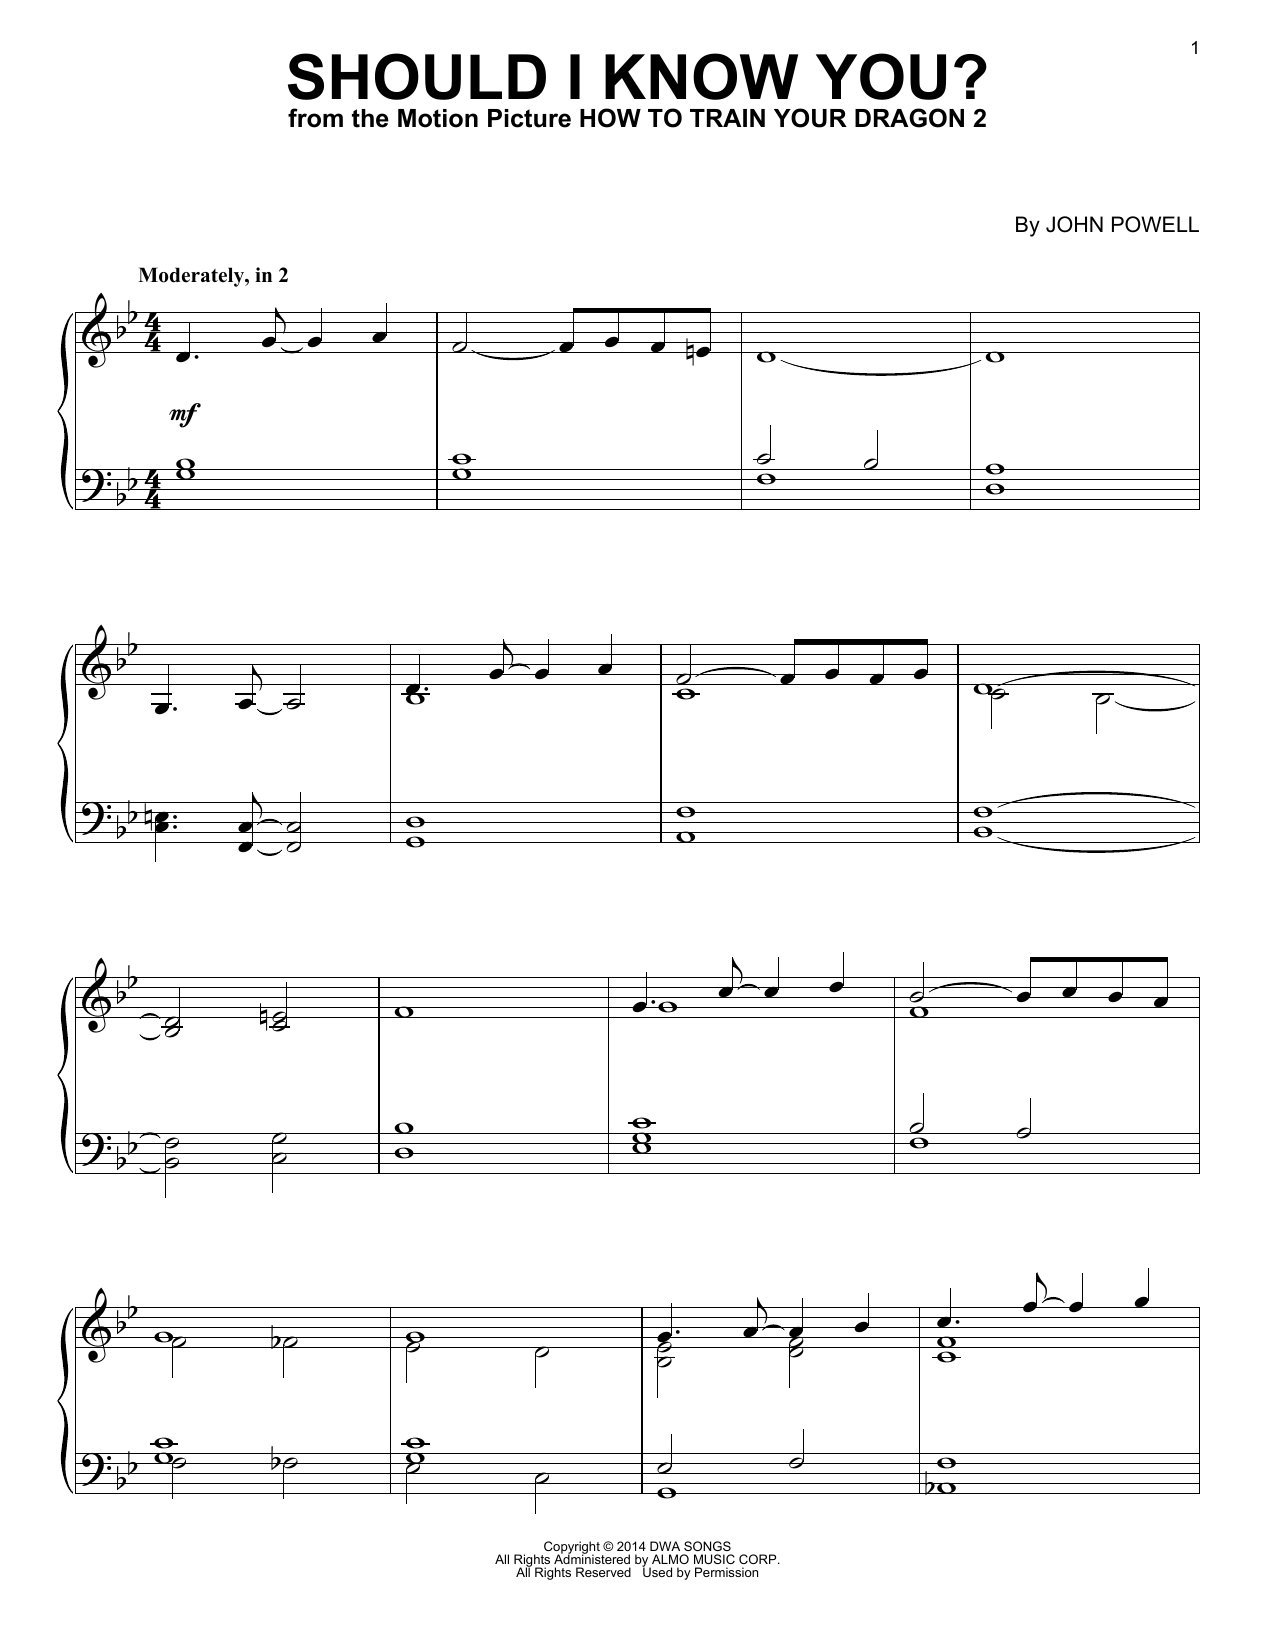 John Powell Should I Know You From How To Train Your Dragon Sheet Music Download Pdf Score 157385